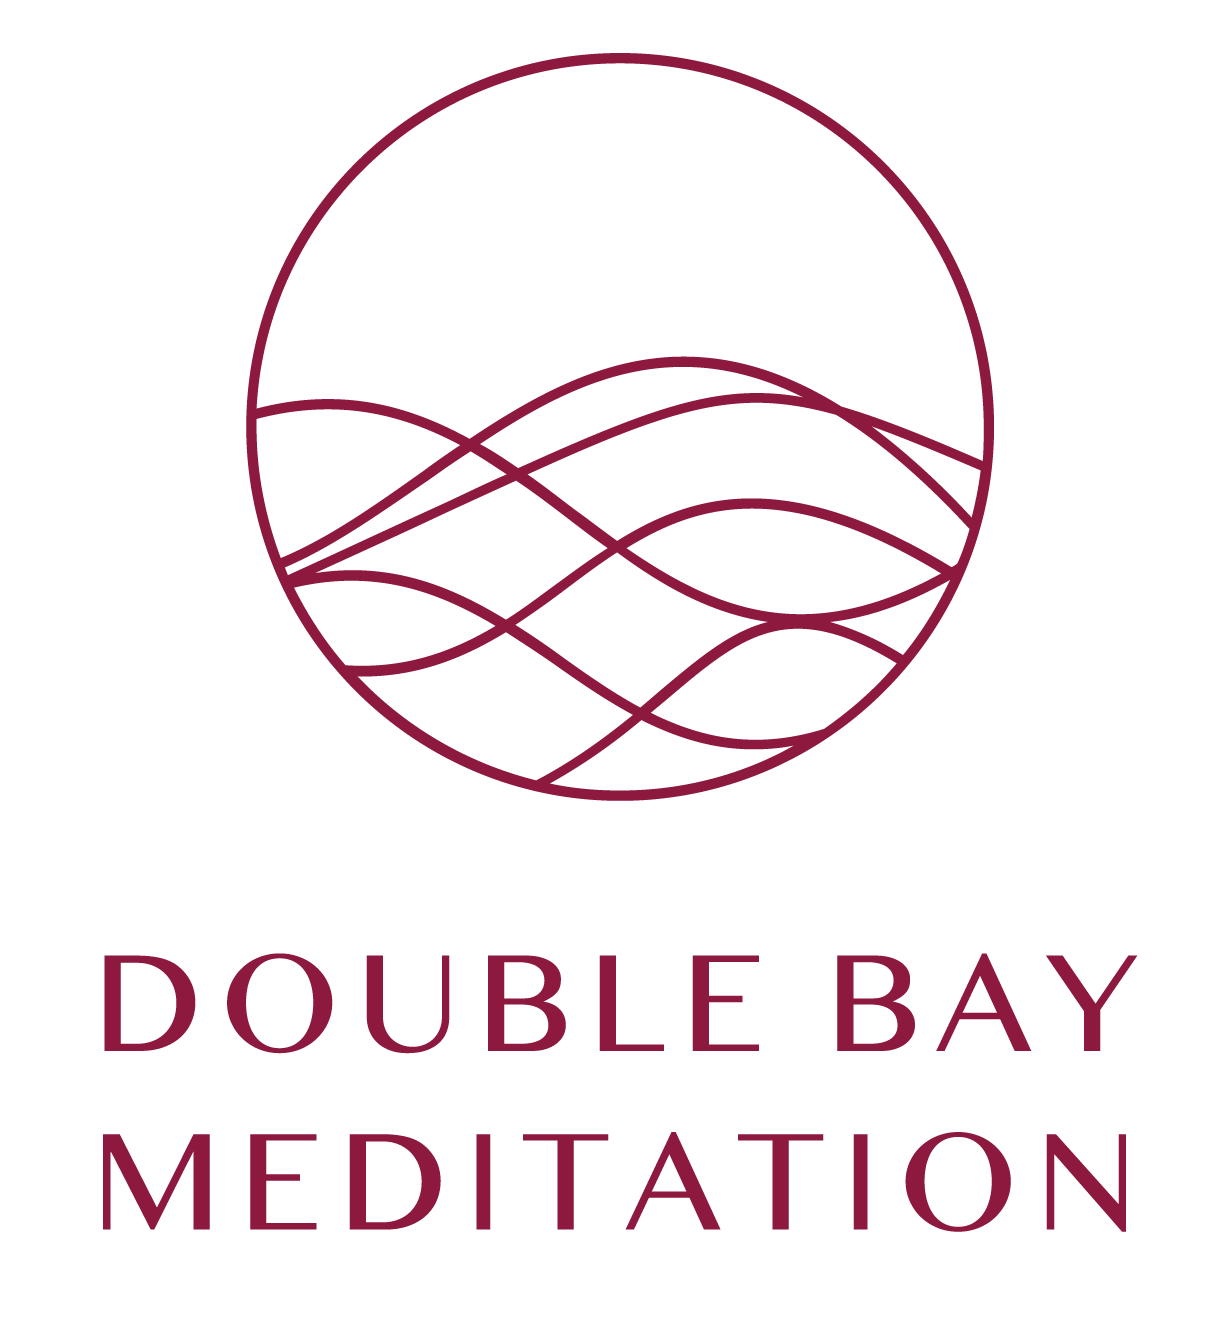 Double Bay Meditation